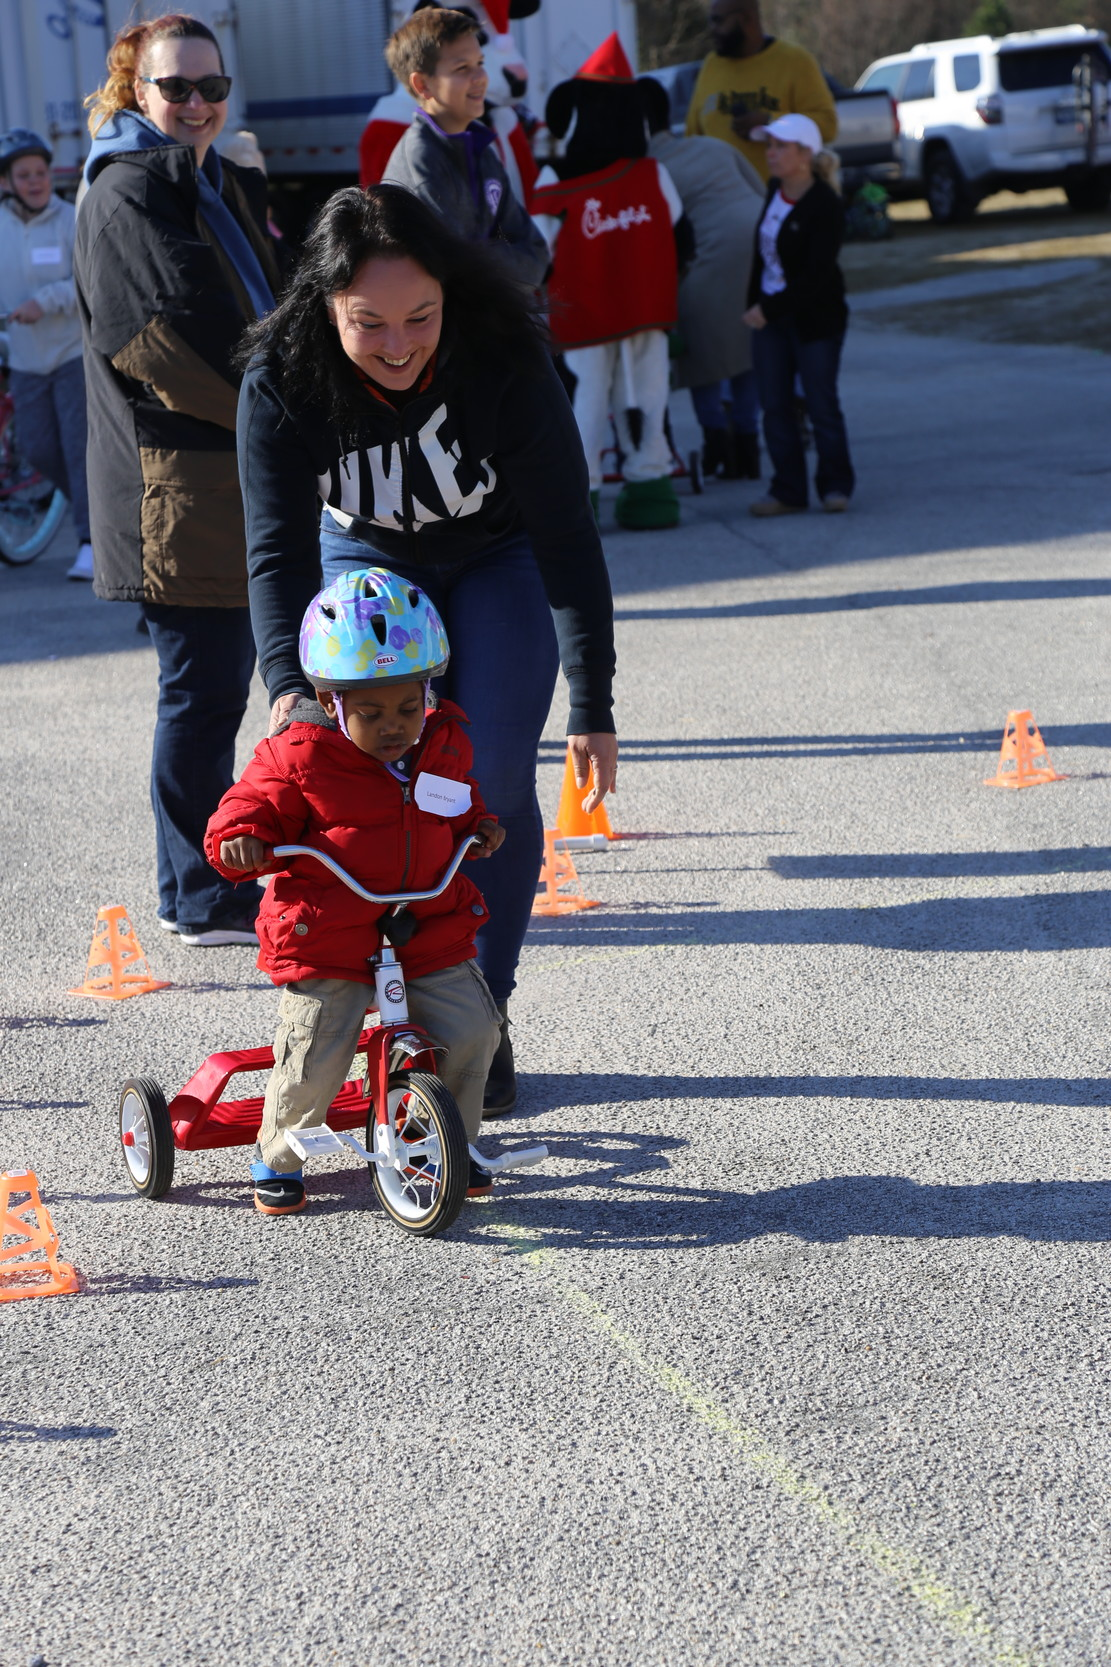 PHOTOS BY ADRIENNE SARVIS / THE SUMTER ITEMA child learns to ride a tricycle at the Cycles for Christmas giveaway on Saturday organized by Evening Optimist Club of Sumter.